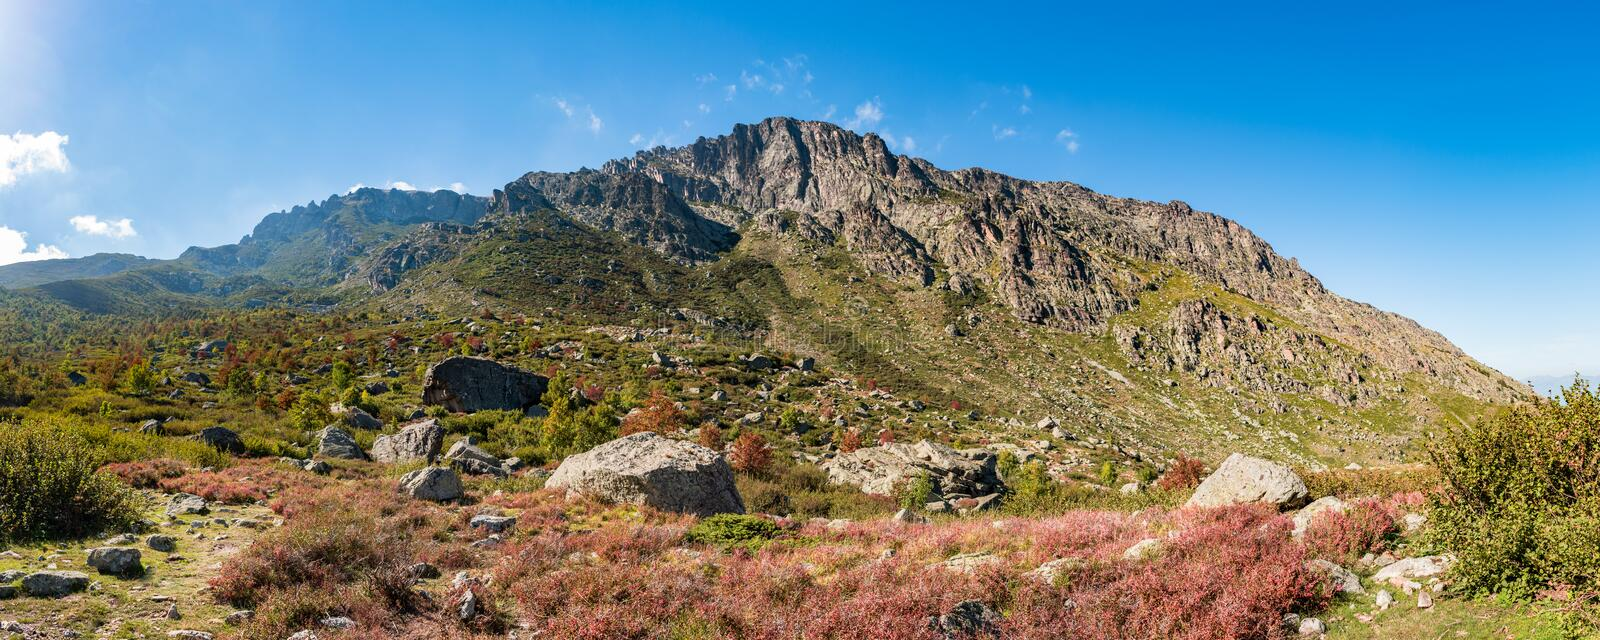 Panoramic view of Monte Cardo located in the Regional Natural Park of Corsica royalty free stock photos